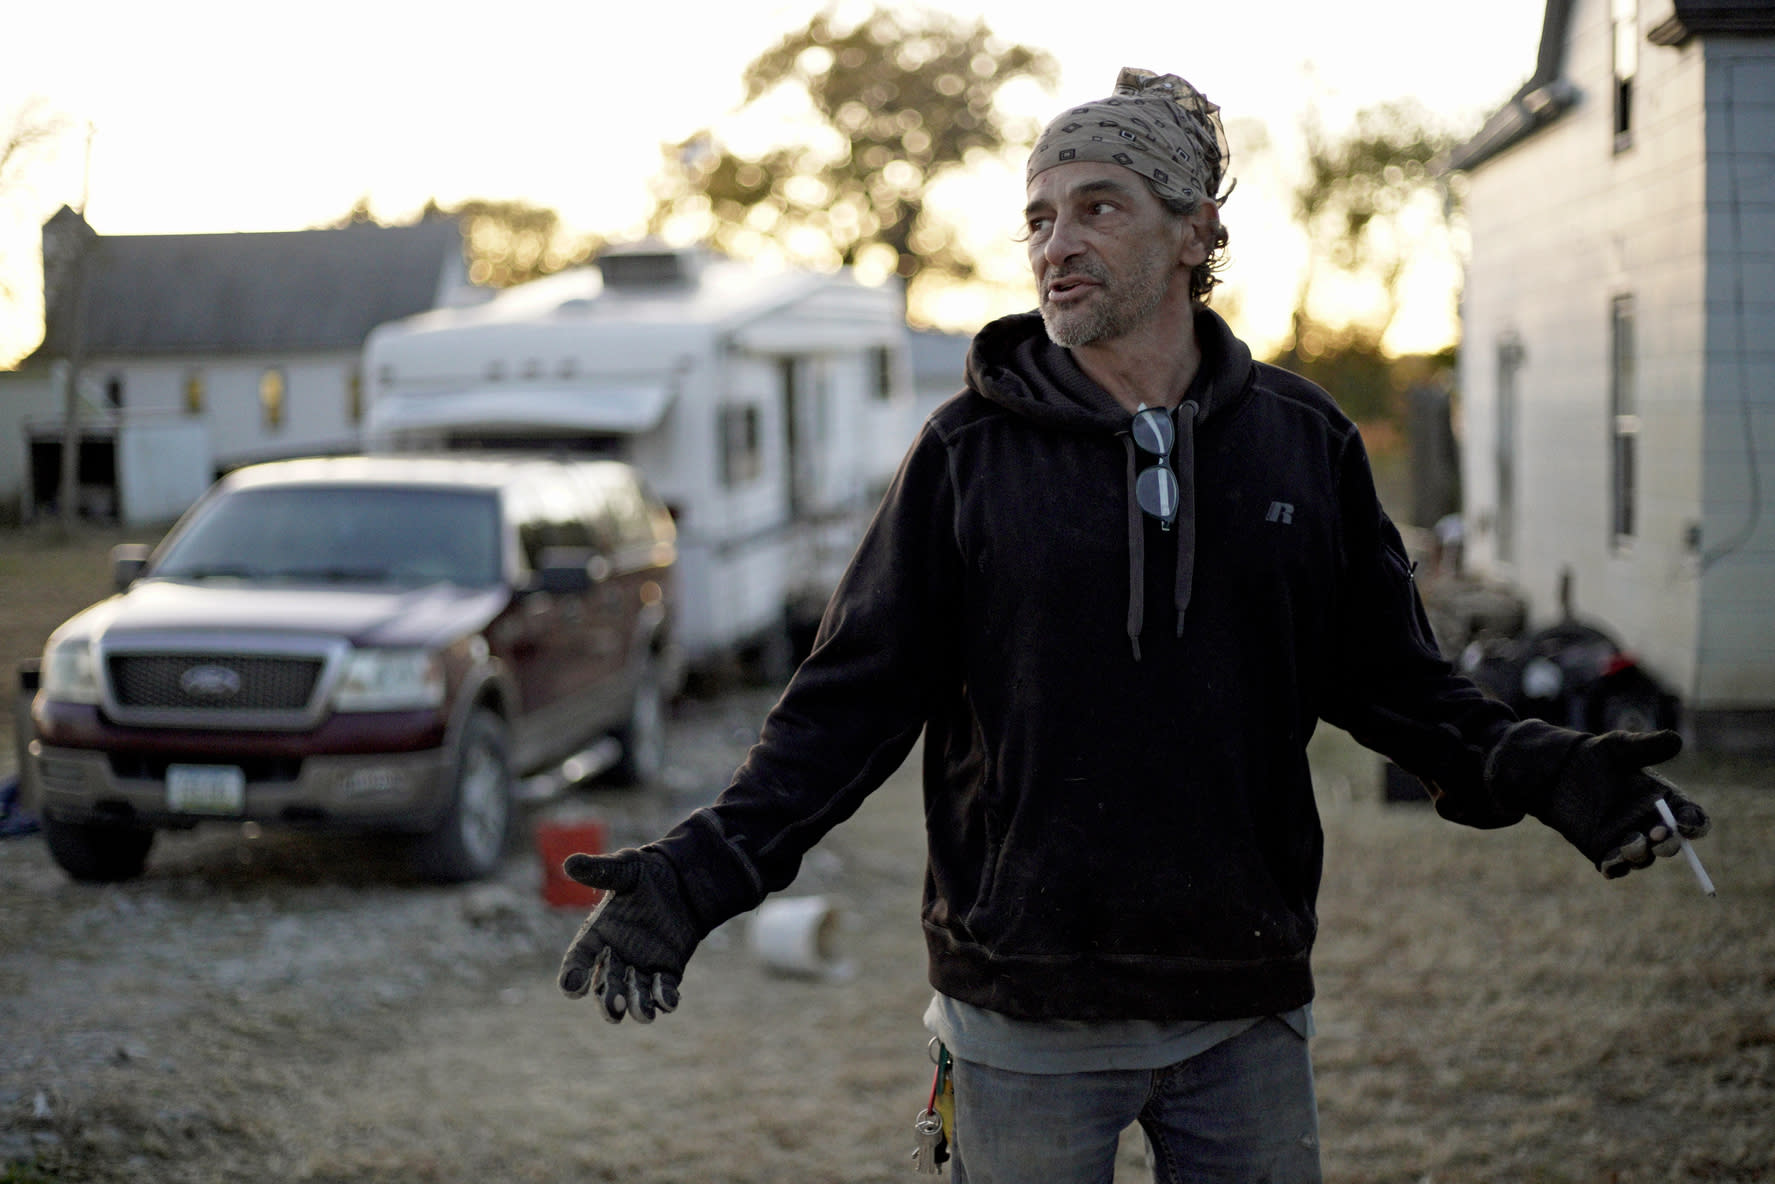 In this Tuesday, Oct. 22, 2019 photo, Marty Study gestures in Bartlett, Iowa, in front of the trailer he has lived in since the March floods. Study said he was rescued from his home, right rear, after floodwaters reached the second floor. Flooding along the Missouri River has stretched on for seven months in places and could endure through the winter, leaving some Upper Midwest farmland and possibly some homes encased in ice. (AP Photo/Nati Harnik)